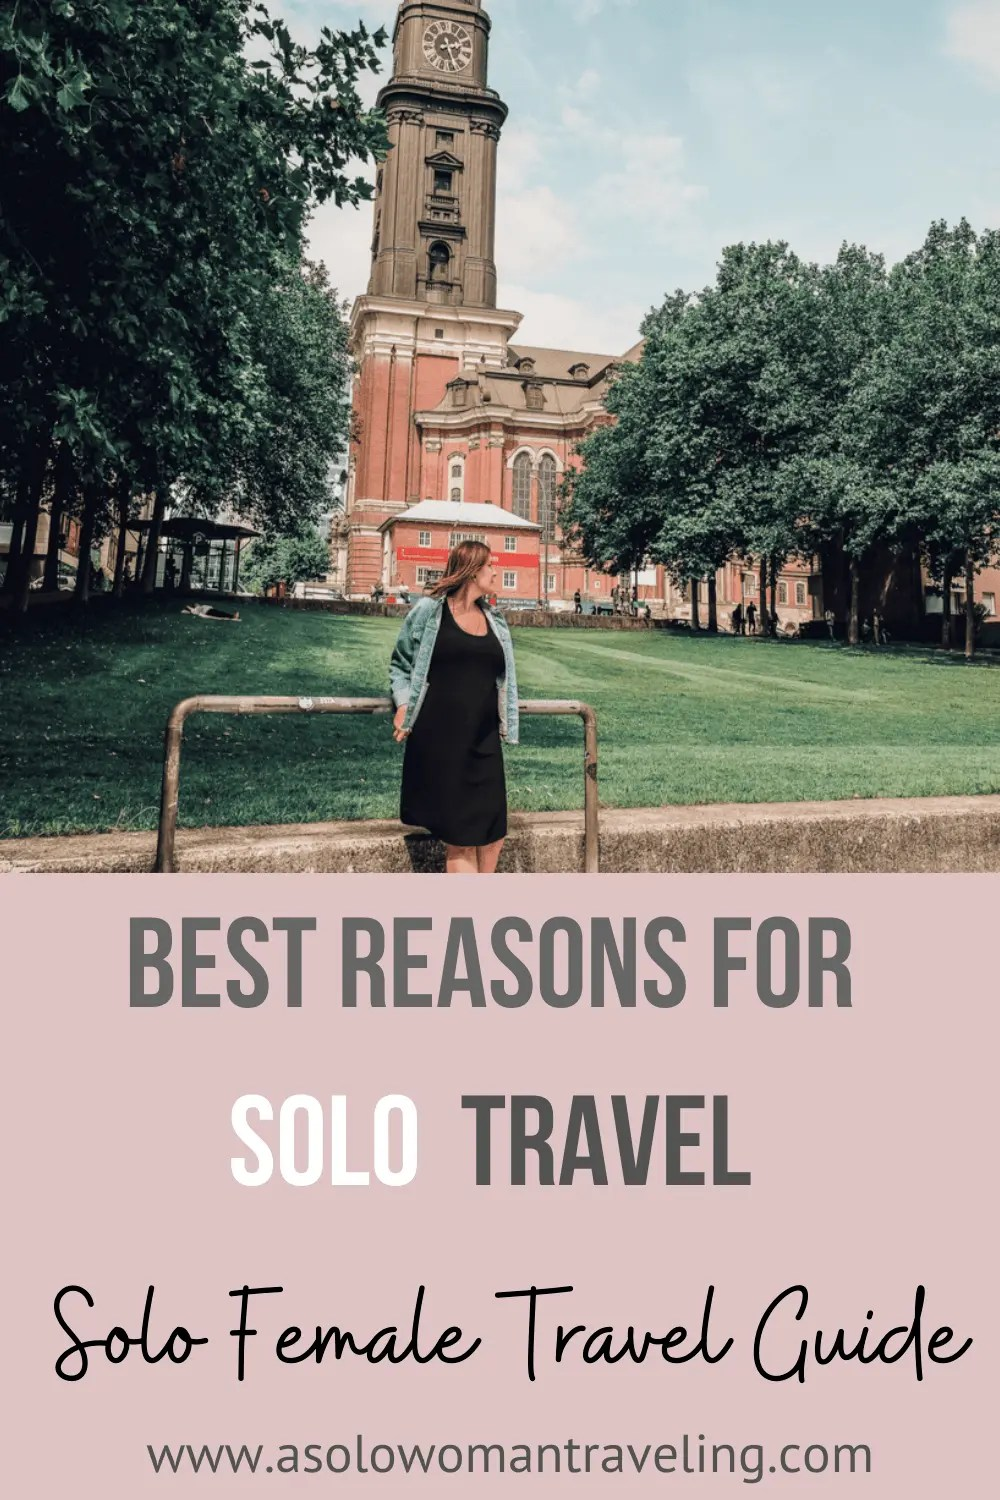 7 Reasons to Travel Solo Female